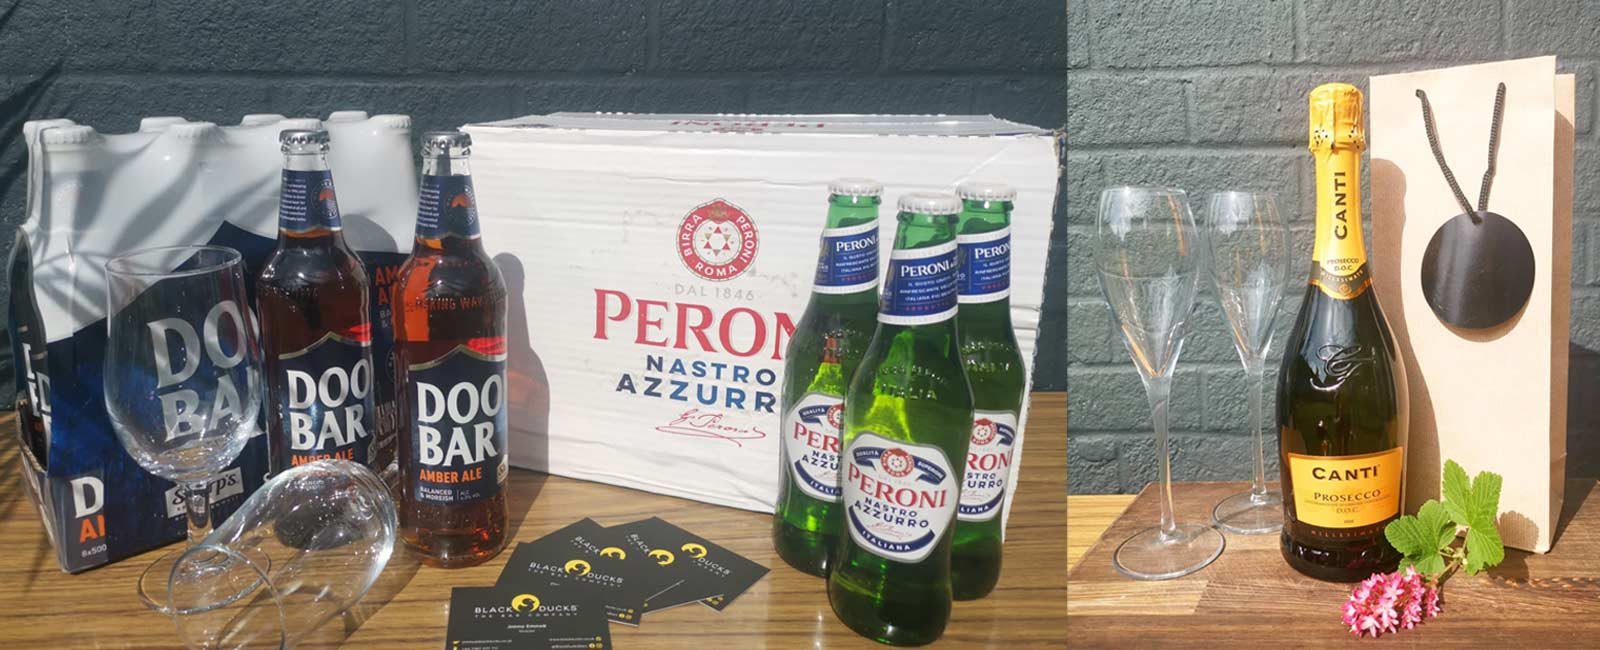 Beer & Prosecco Delivery